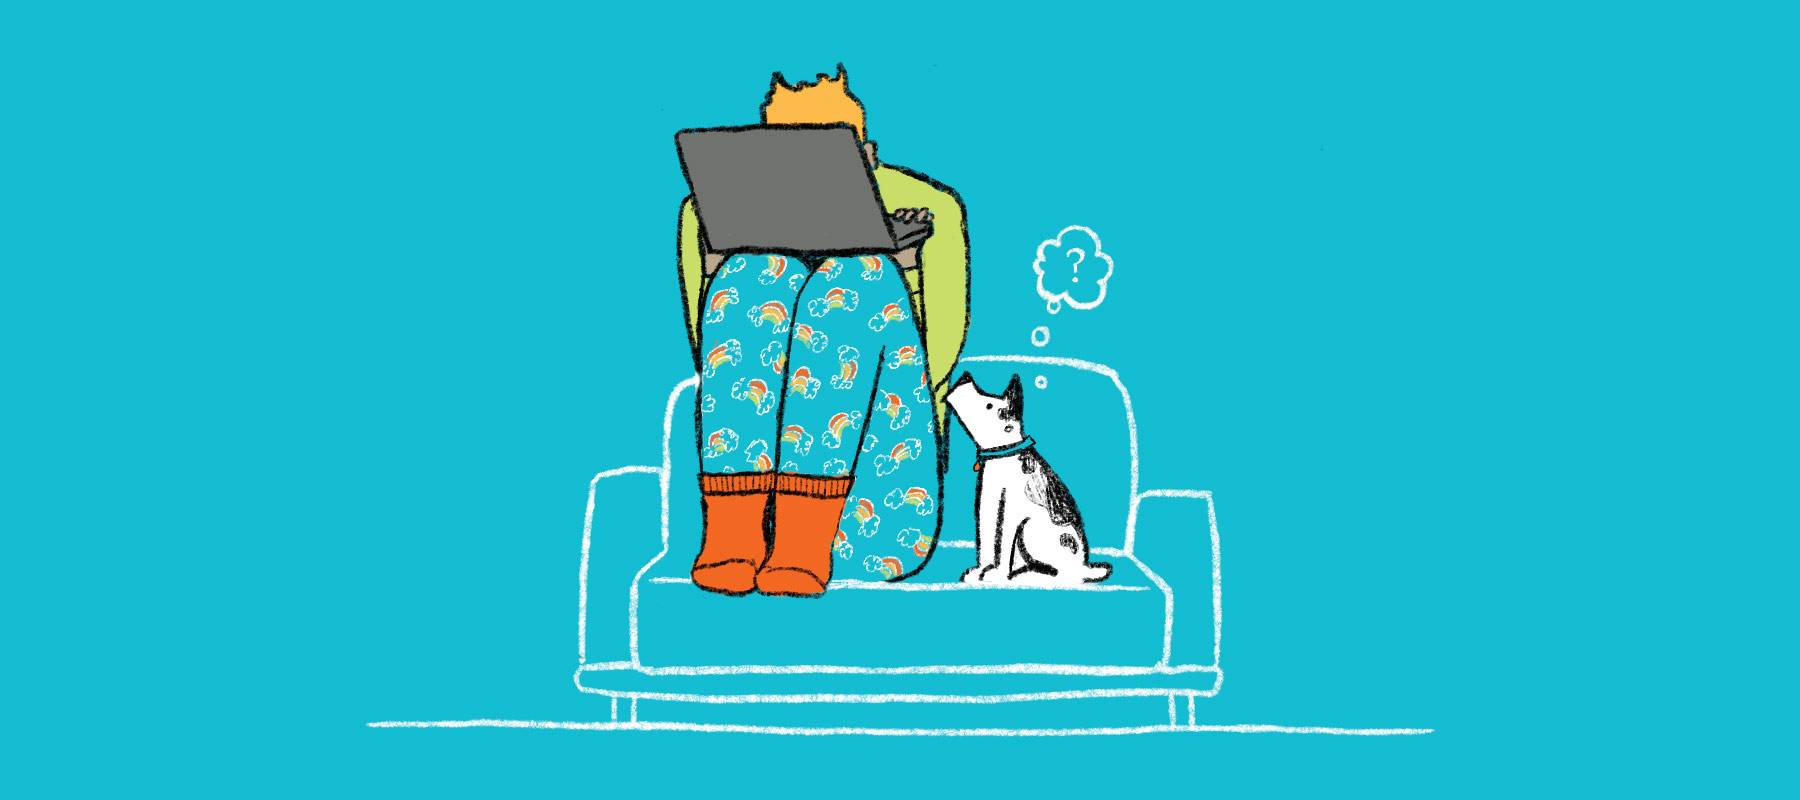 Work from home person hiding behind computer with puppy asking why